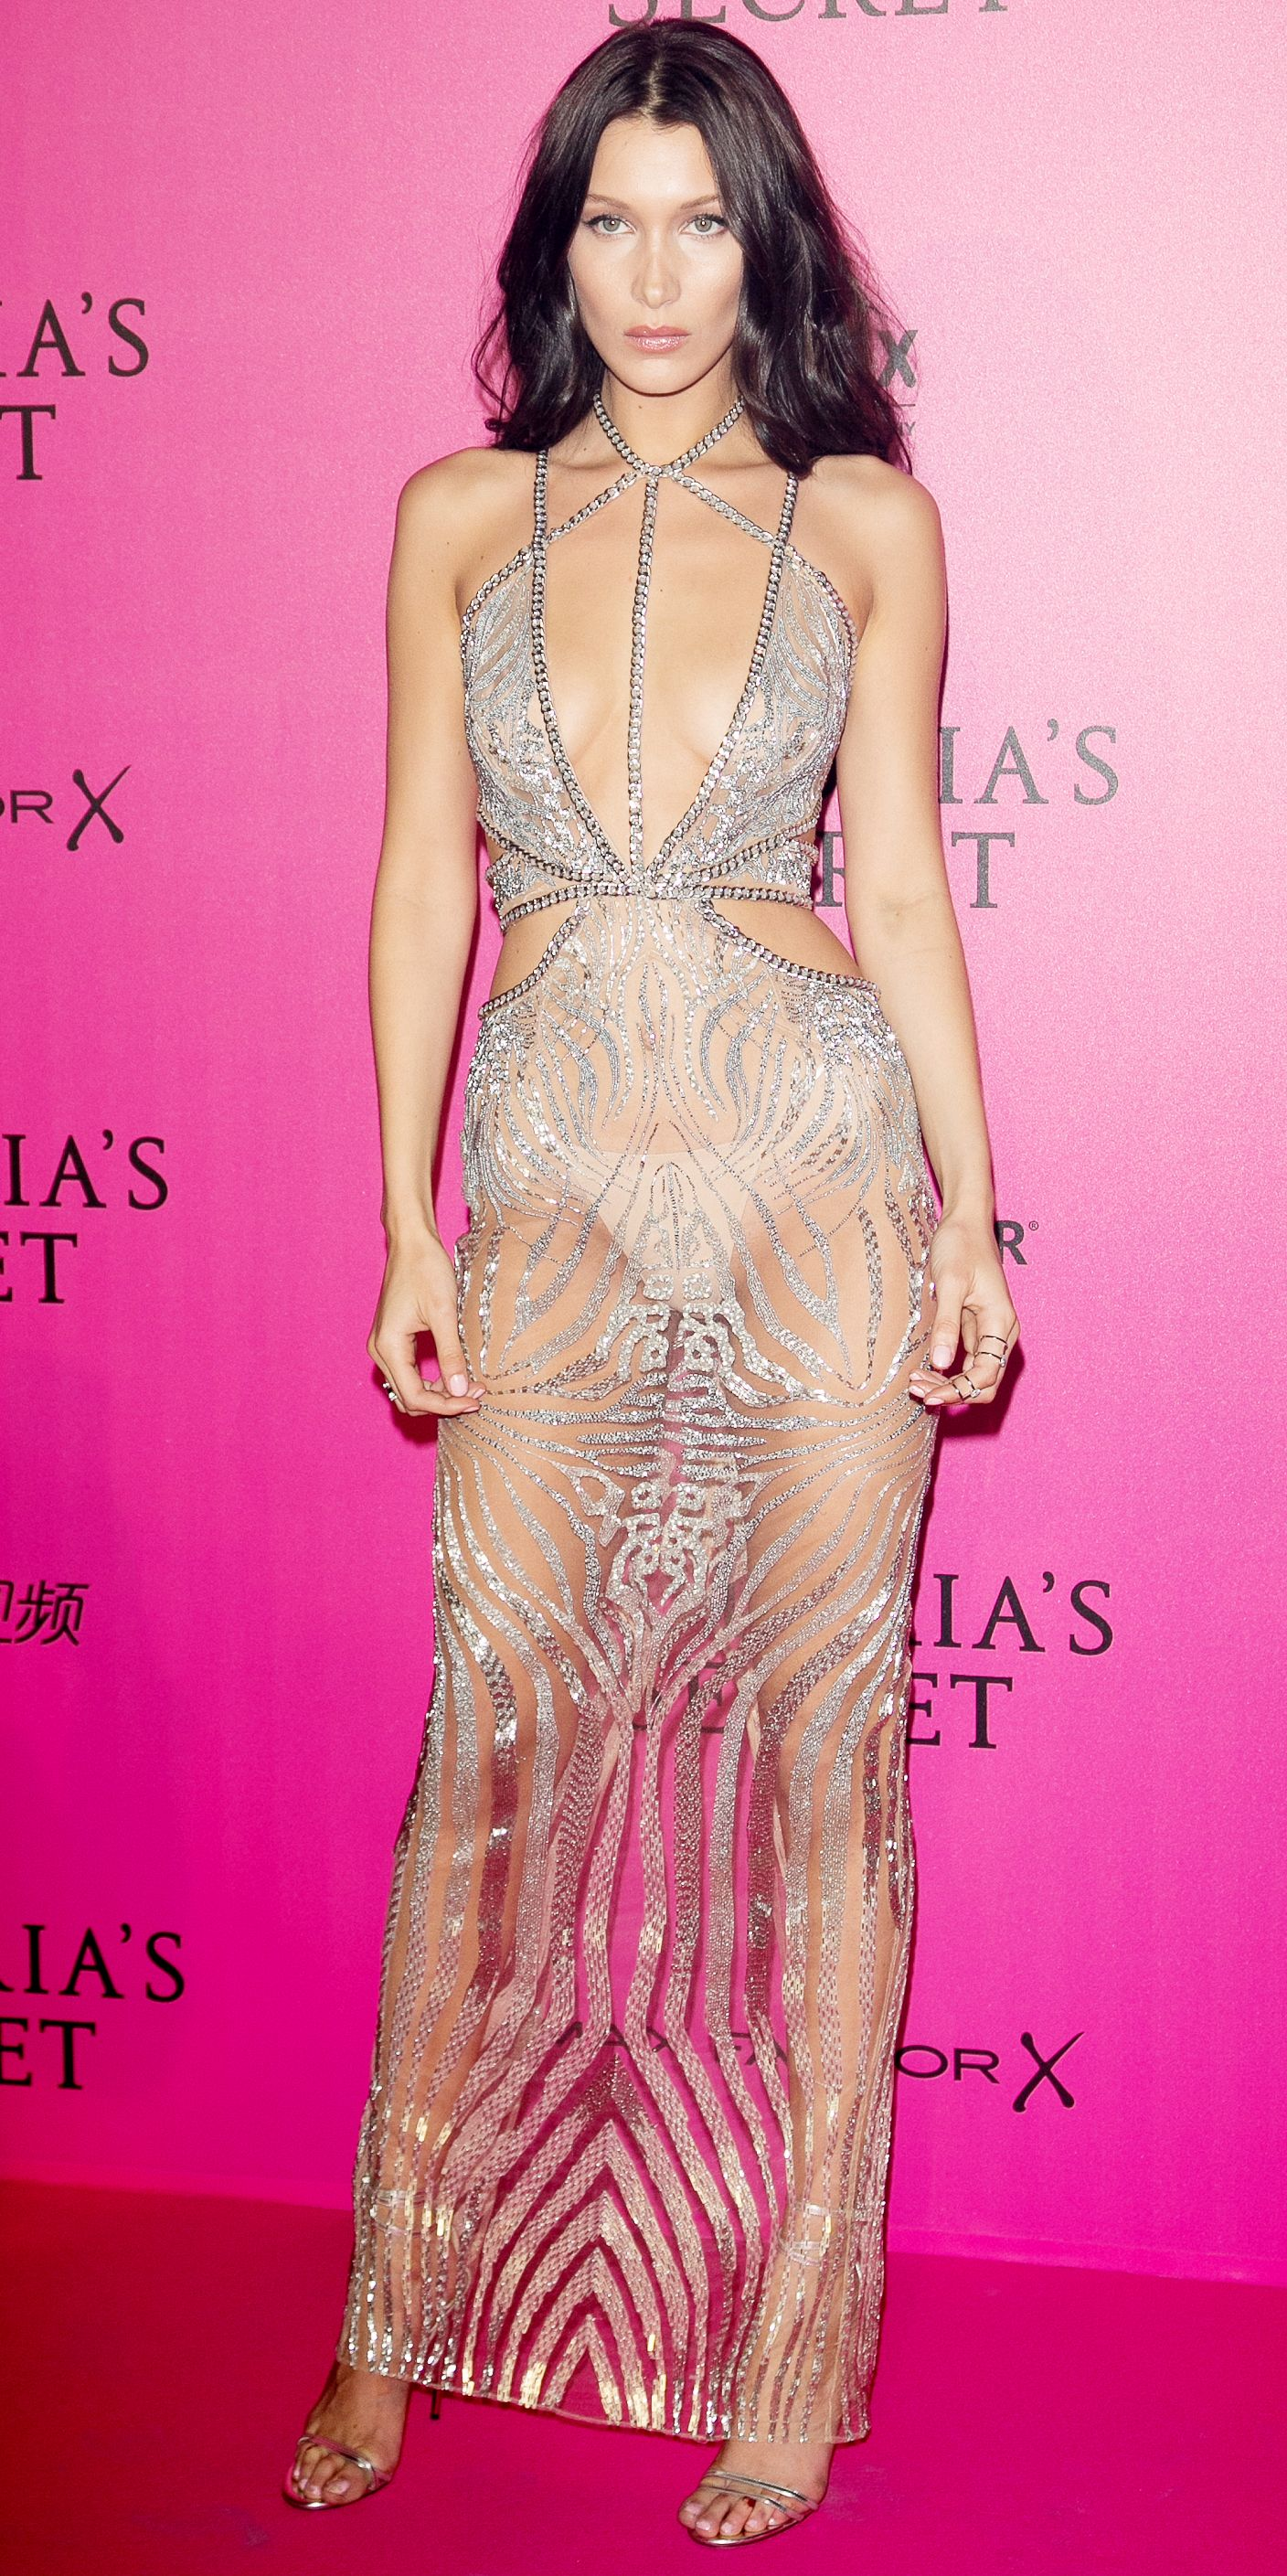 bc02dba54a 15 Jaw-Dropping Looks from the Victoria s Secret Fashion Show After-Party -  Bella Hadid from InStyle.com